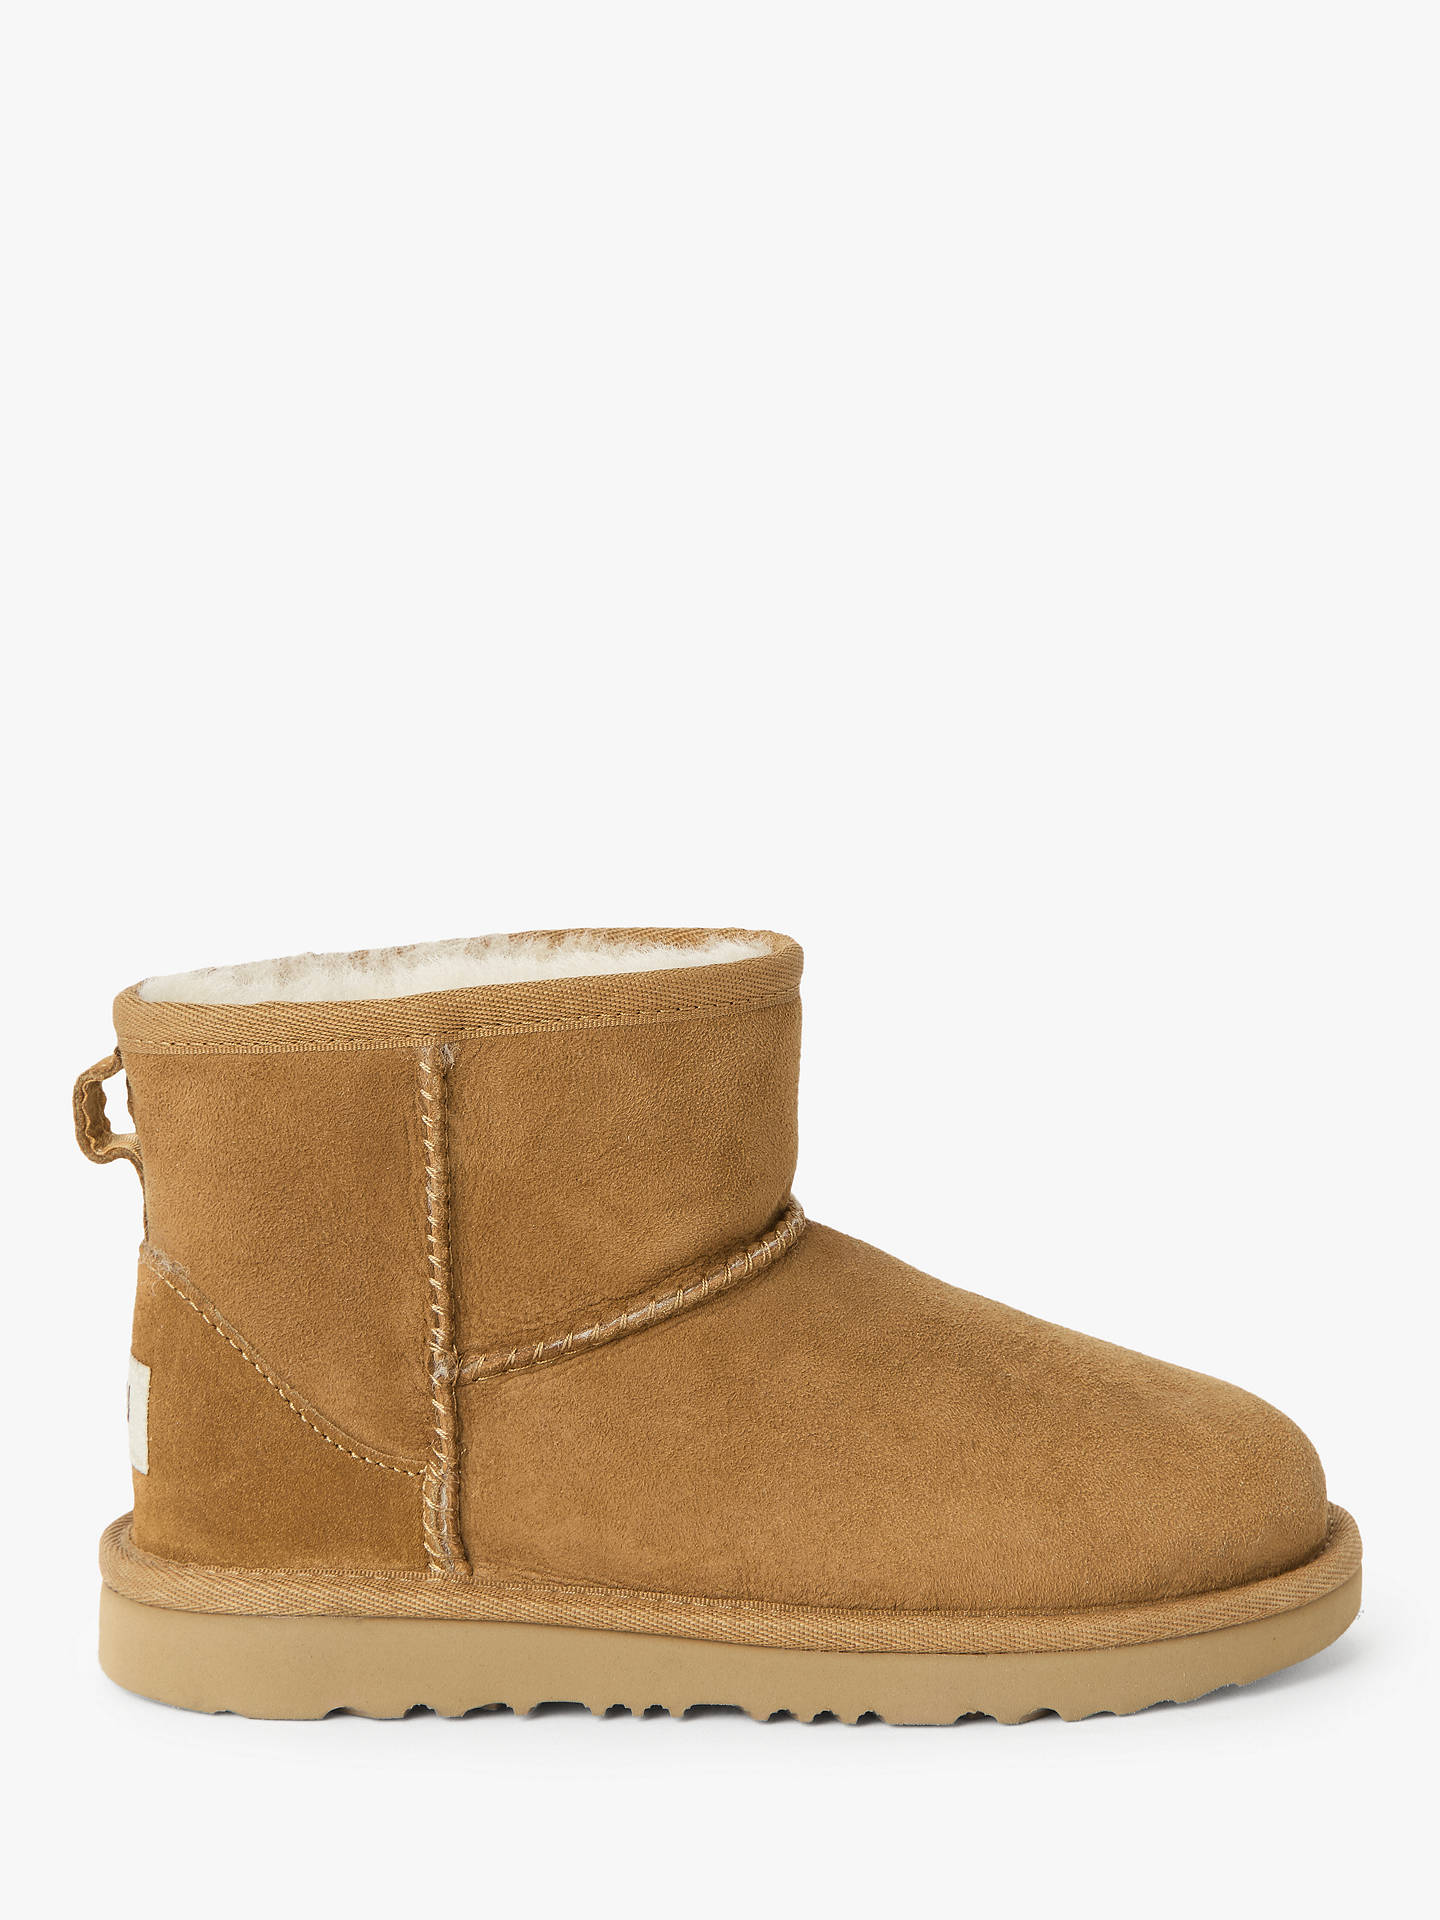 Buy UGG Children's Classic Mini II Sheepskin Boots, Chestnut, 12 Jnr Online at johnlewis.com